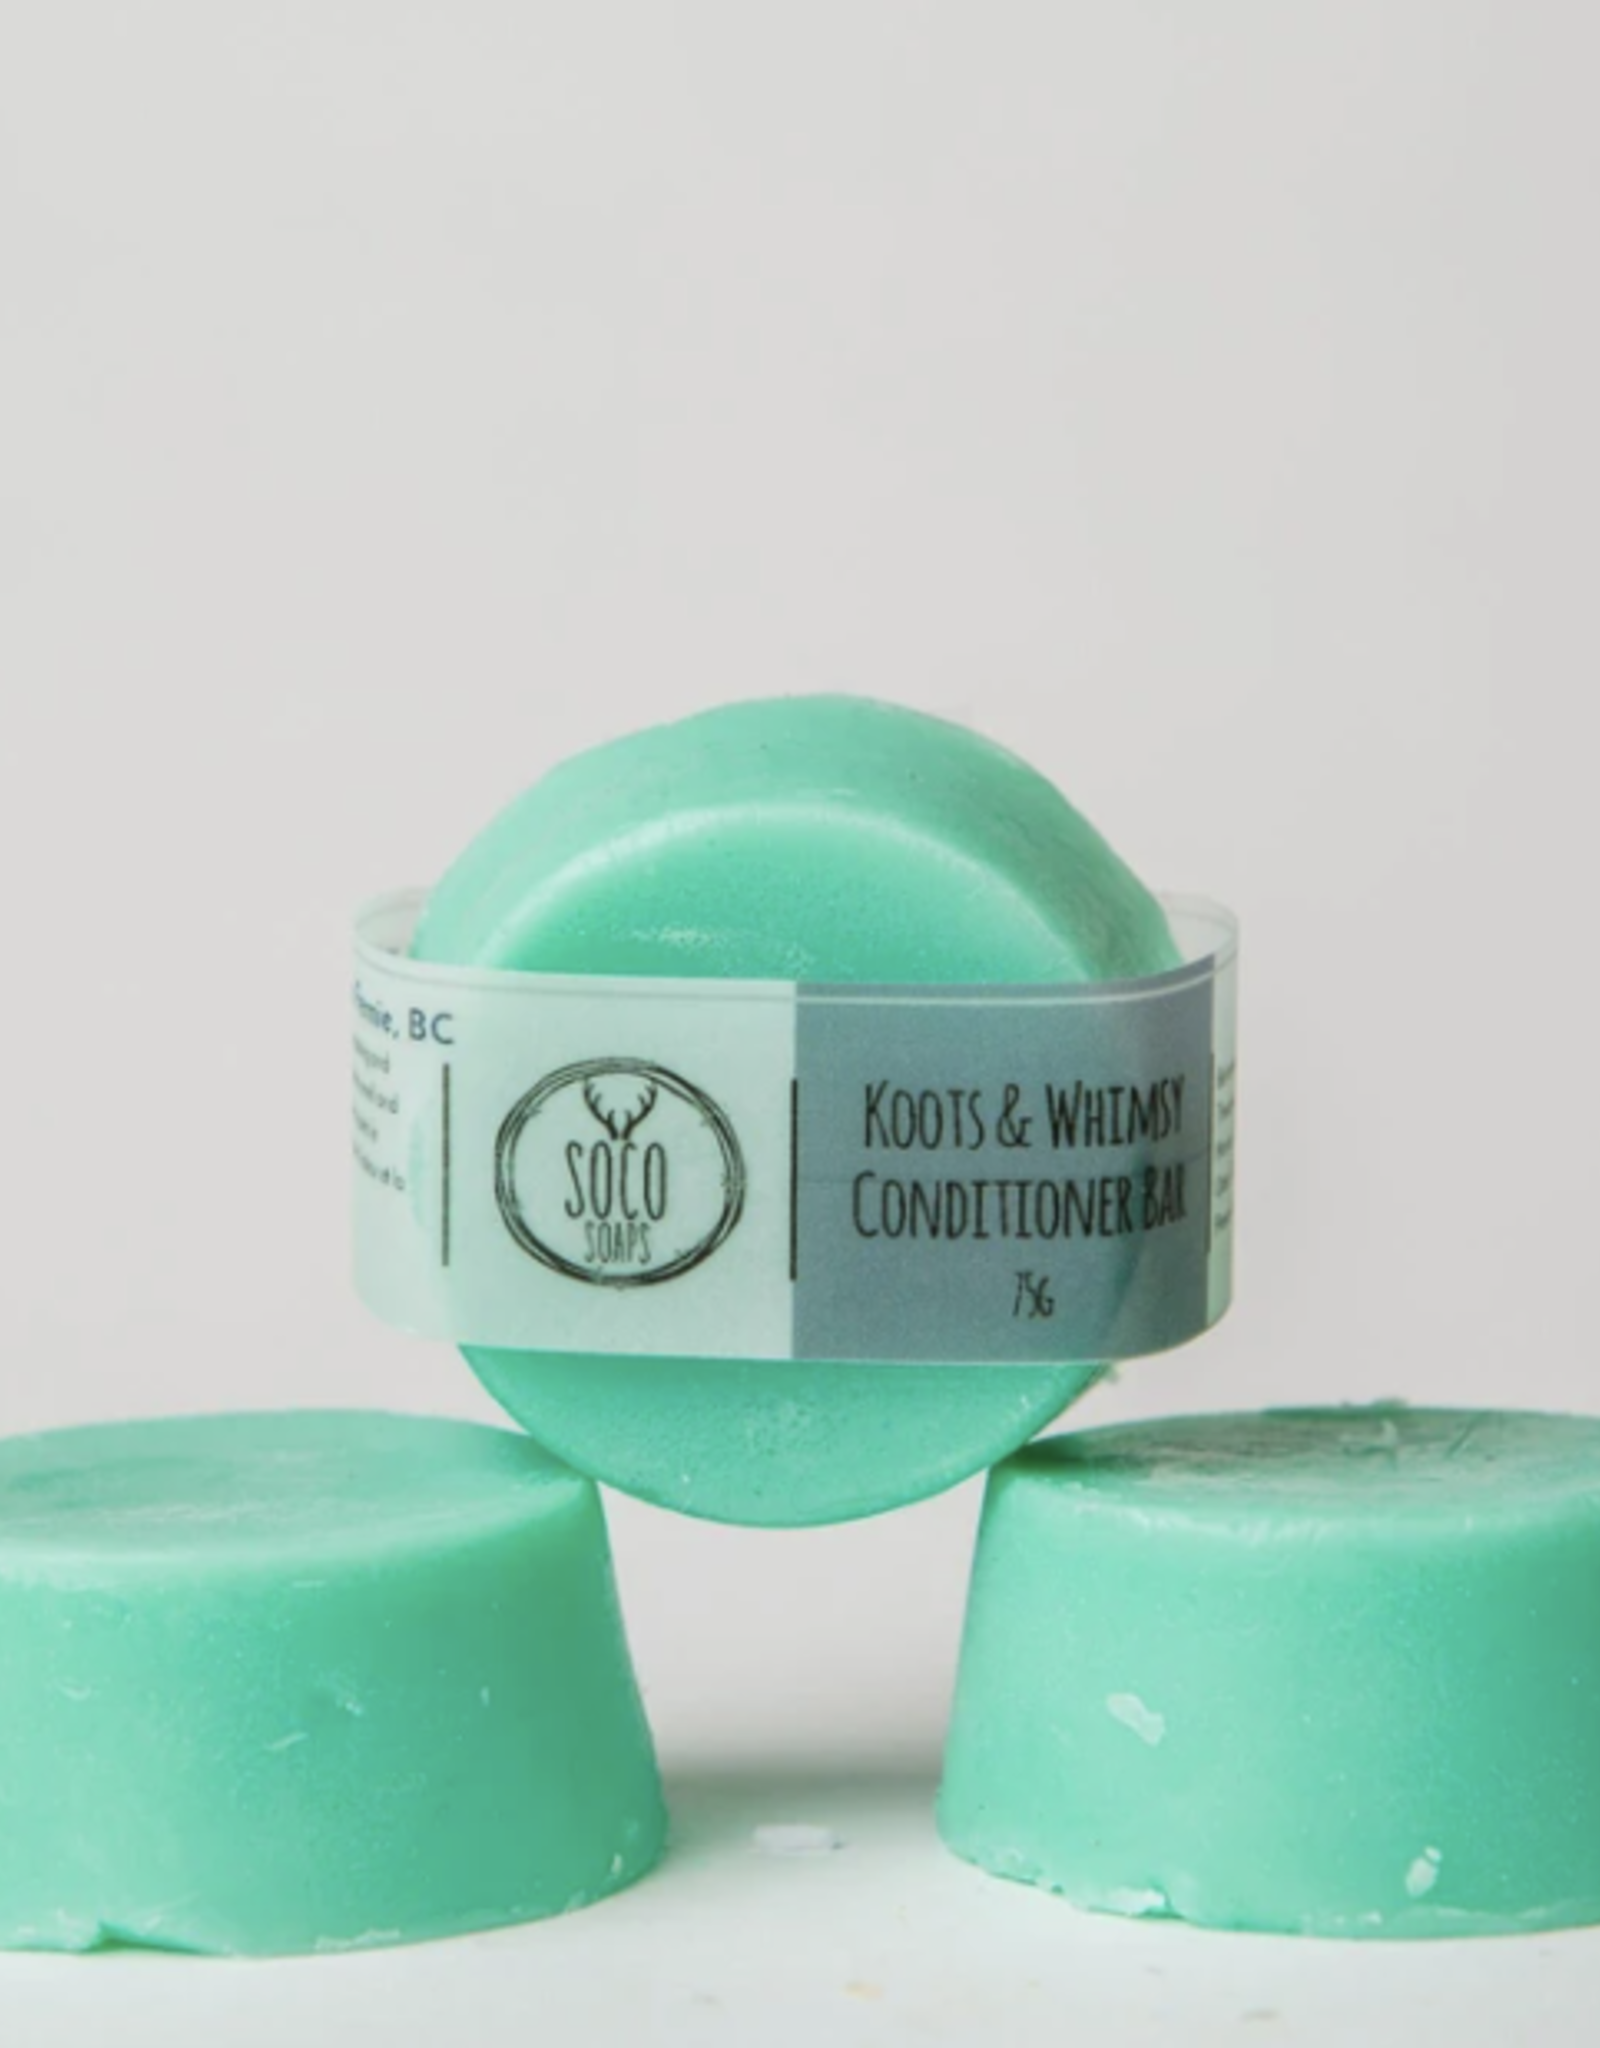 Conditioner Bar by Soco Soaps